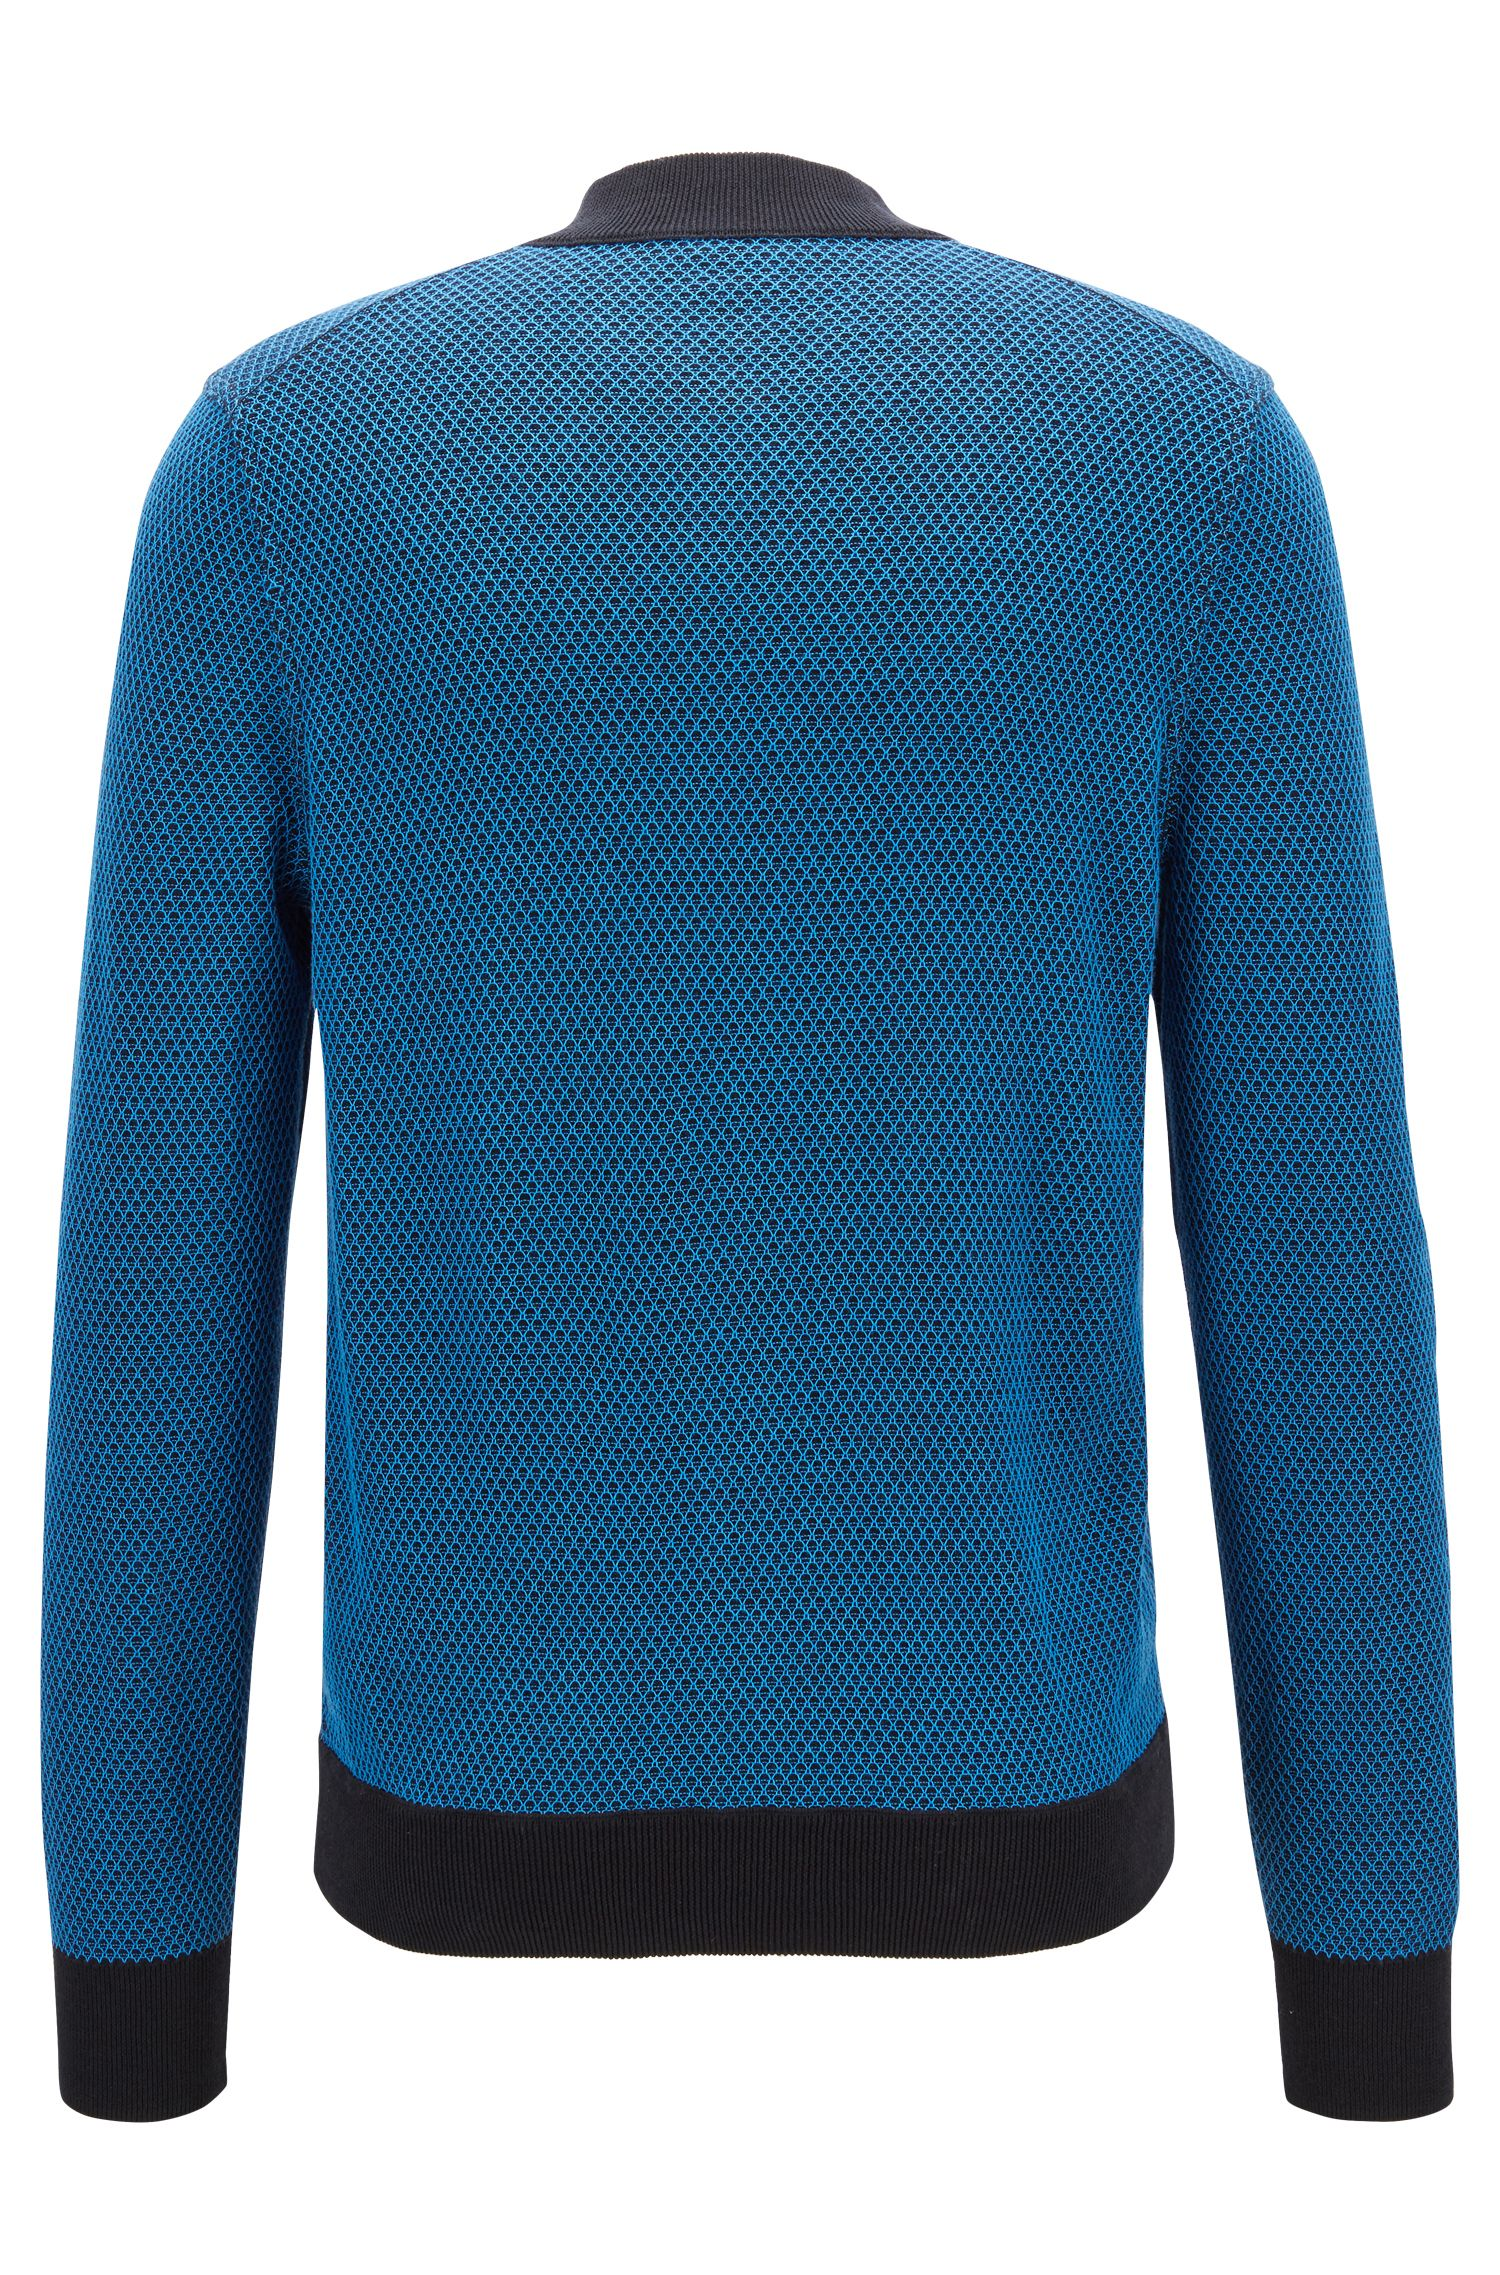 Two-tone knitted jacket in cotton and silk, Blue